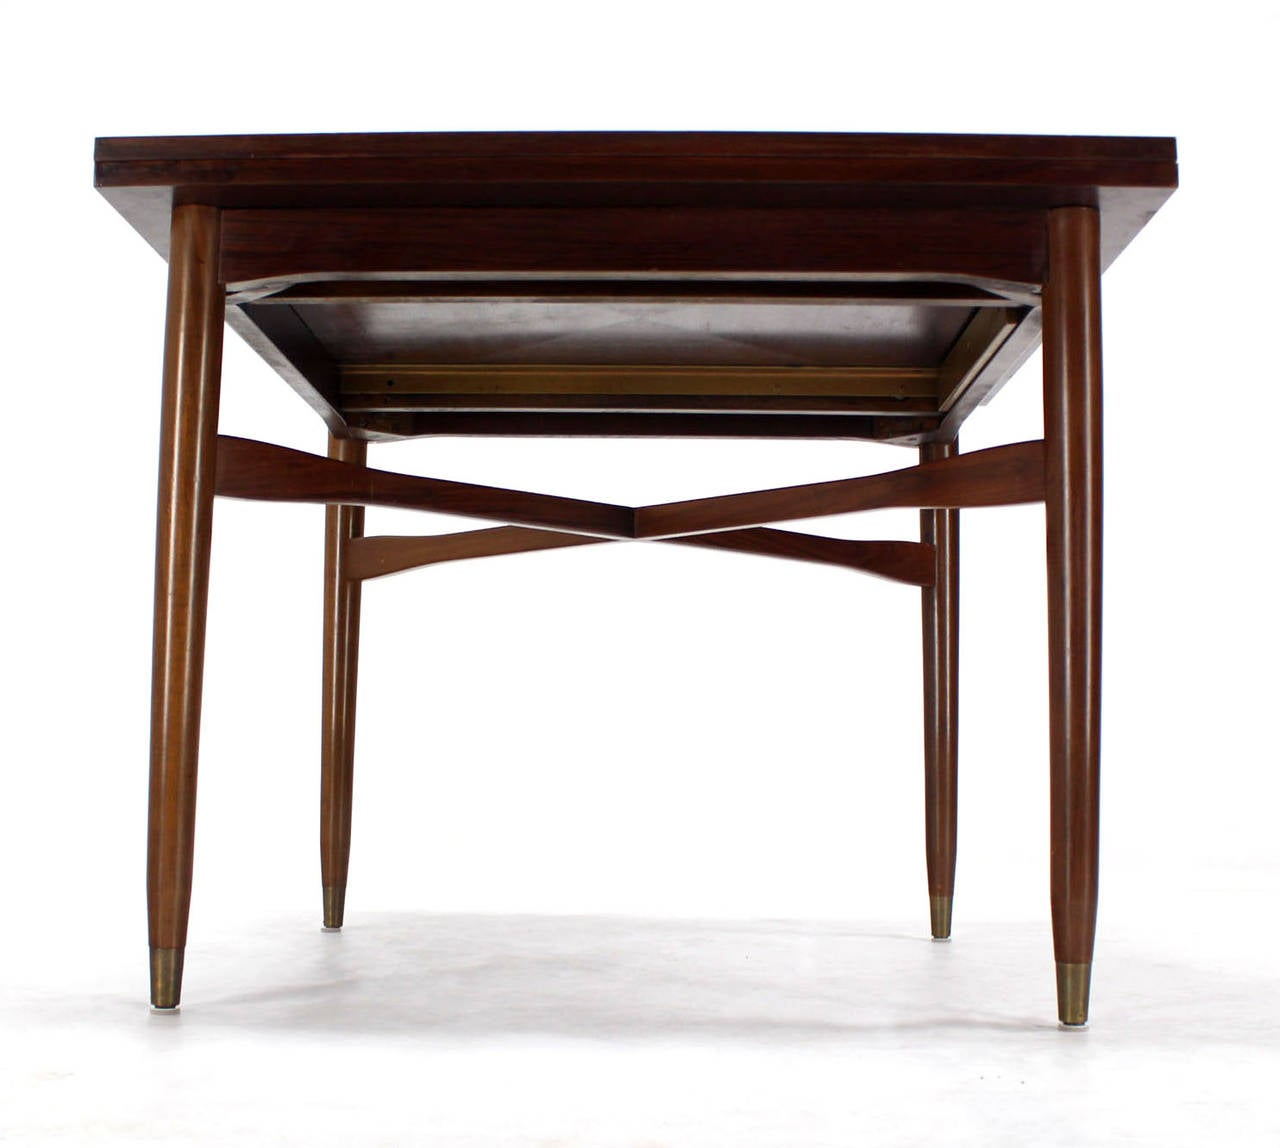 Walnut-Top with Brass Inlay, Mid-Century Modern Expandable Game Table 1